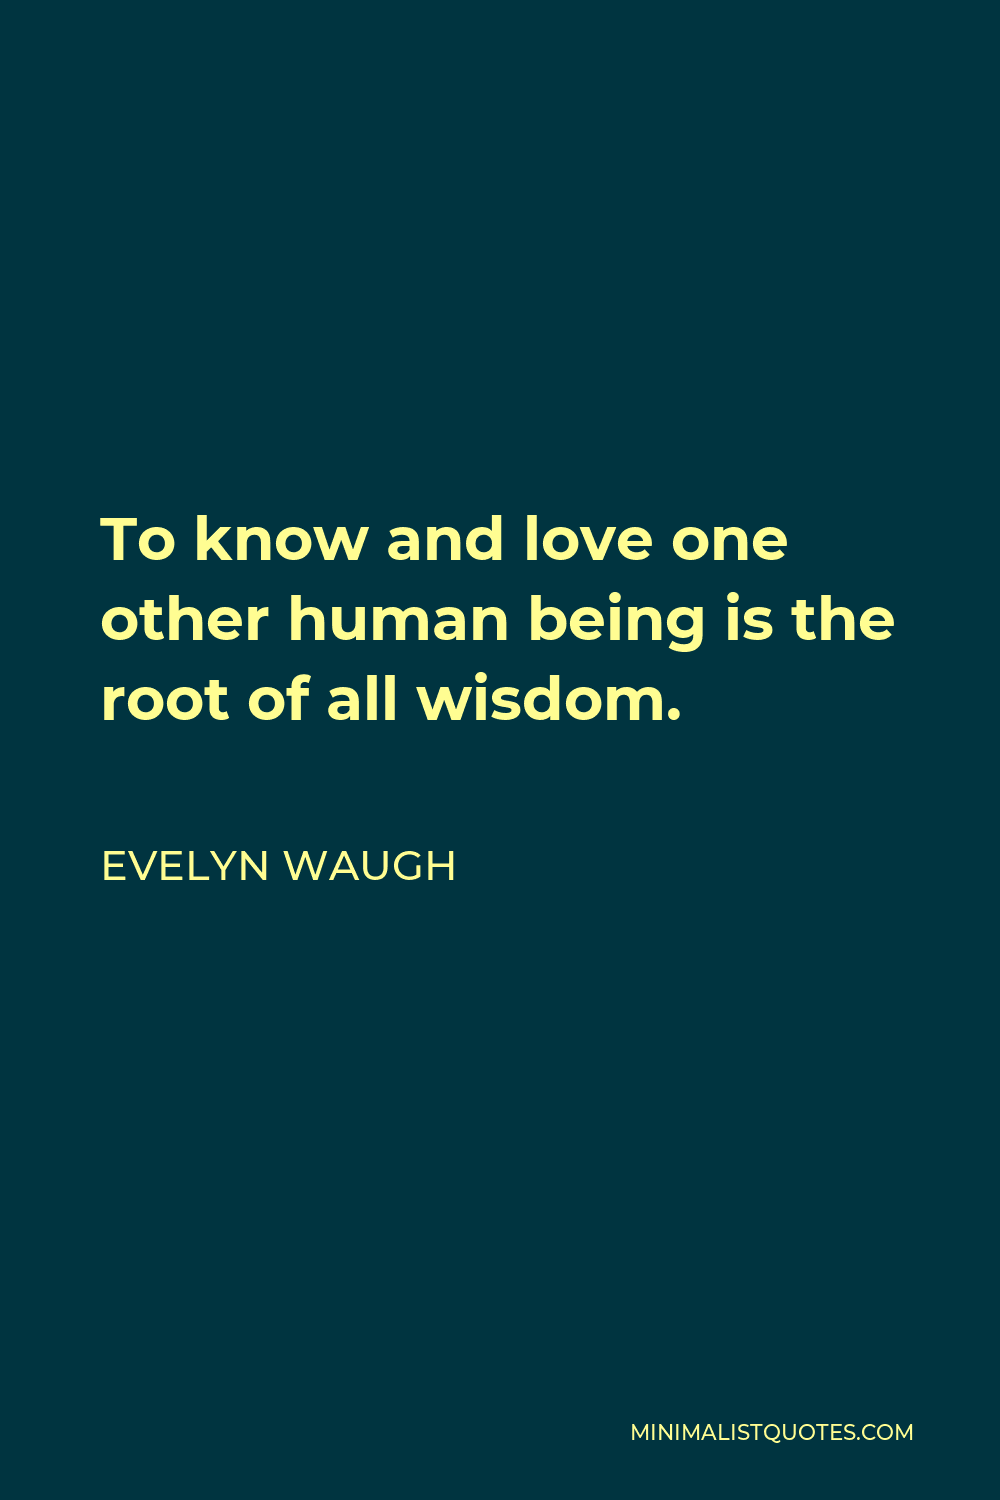 Evelyn Waugh Quote - To know and love one other human being is the root of all wisdom.